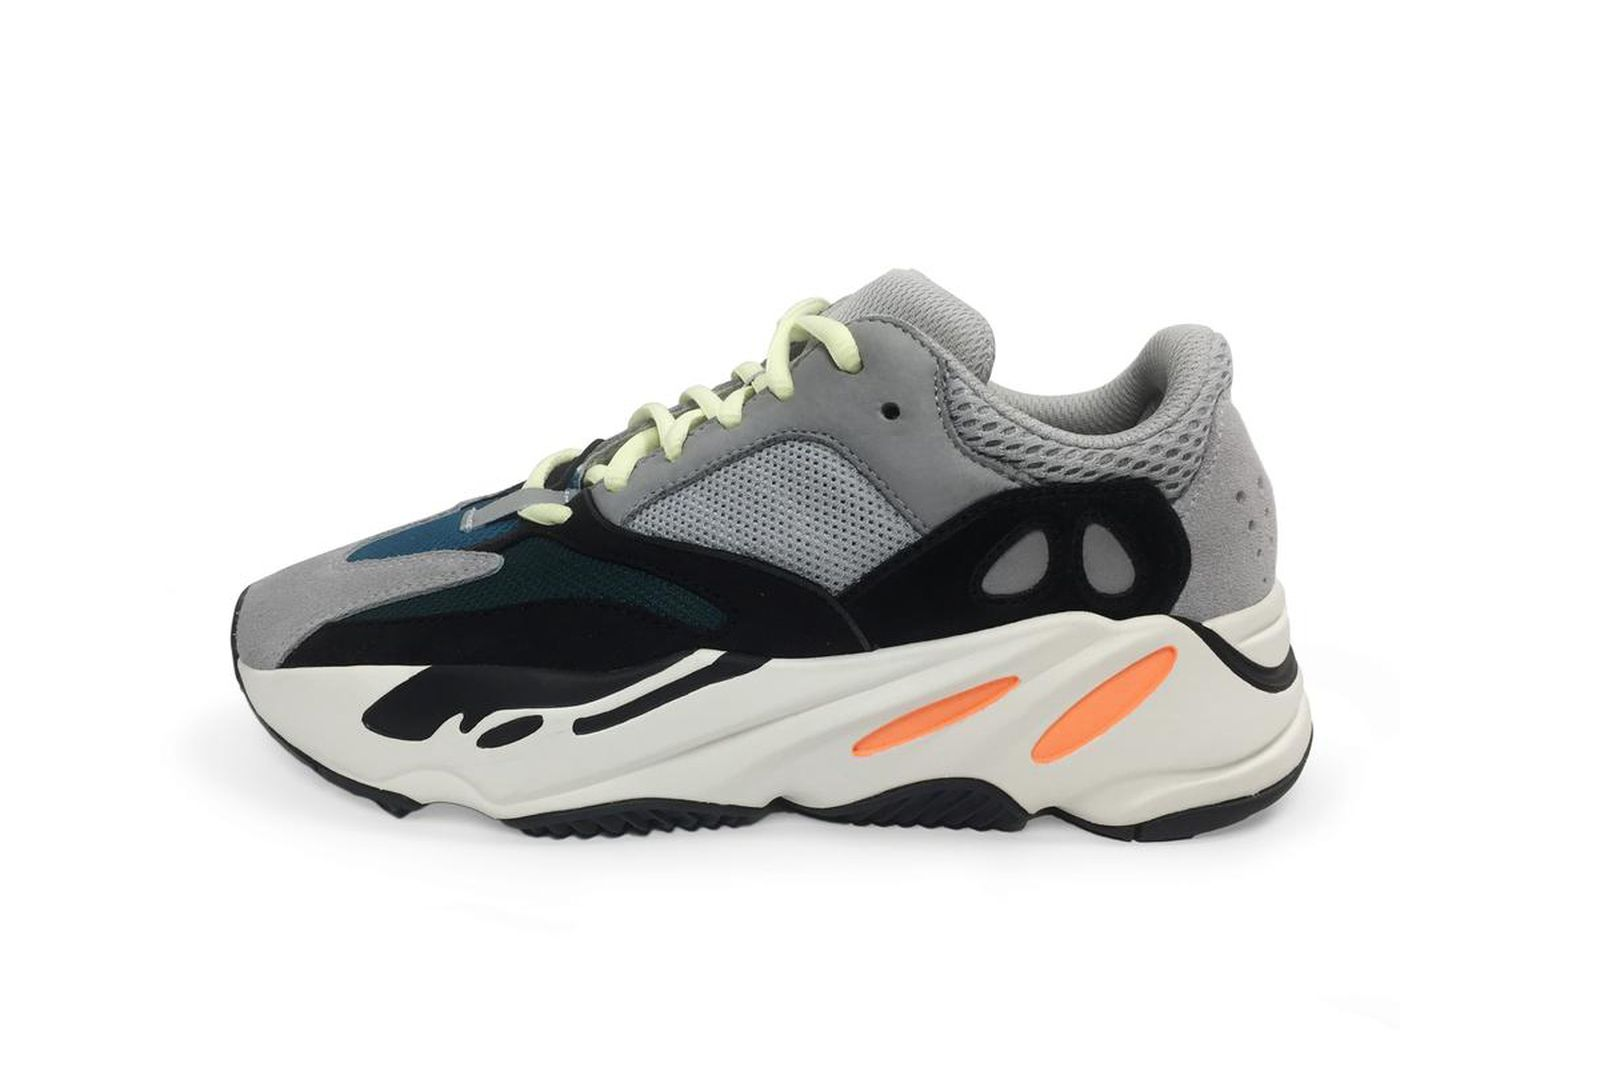 yeezy 700 drop calabasas collection main adidas originals yeezy wave runner 700 kanye west yeezy runner